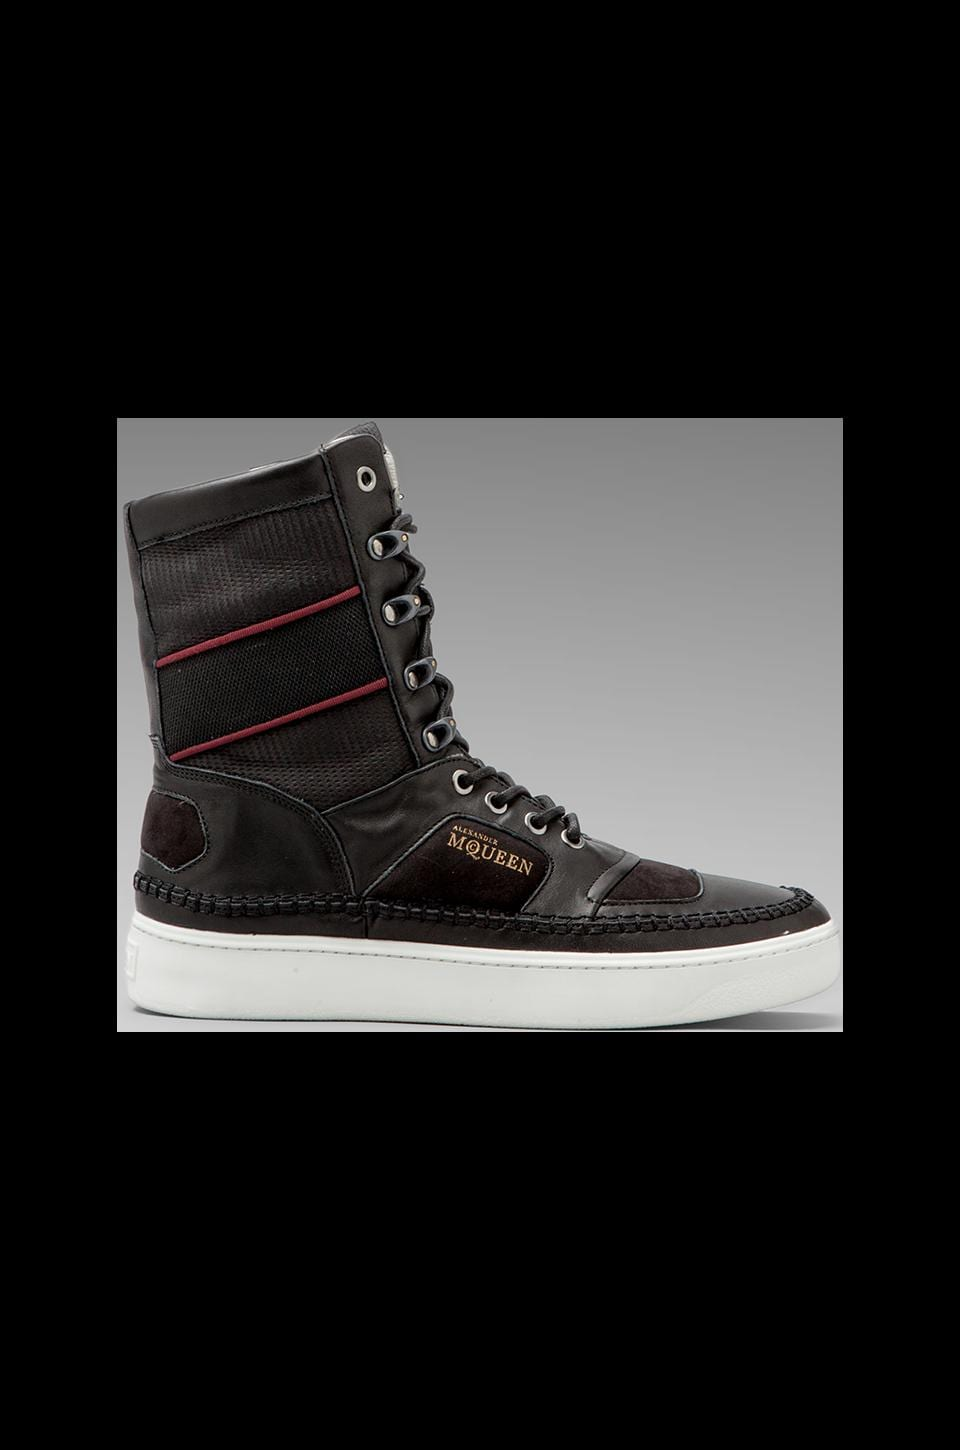 Alexander McQueen Puma Joust Boot in Black